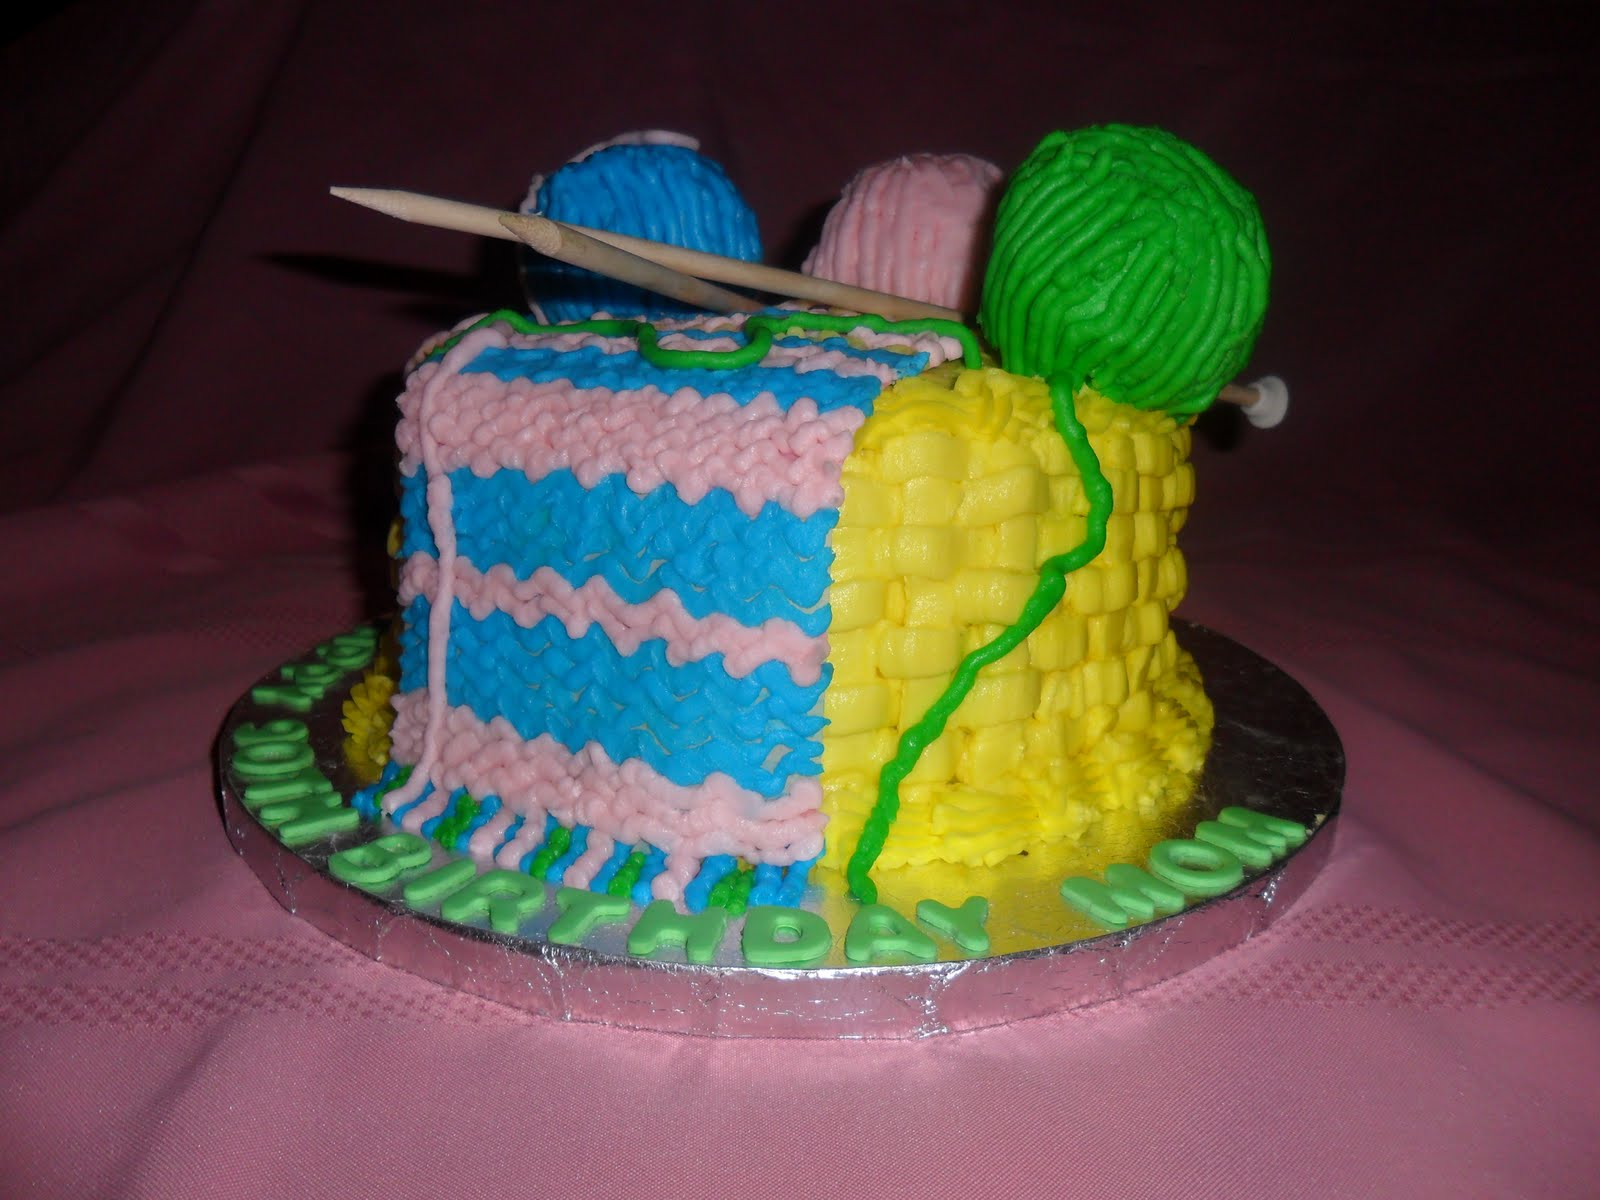 Knitting Cakes Images : Larry the cake guy knitting